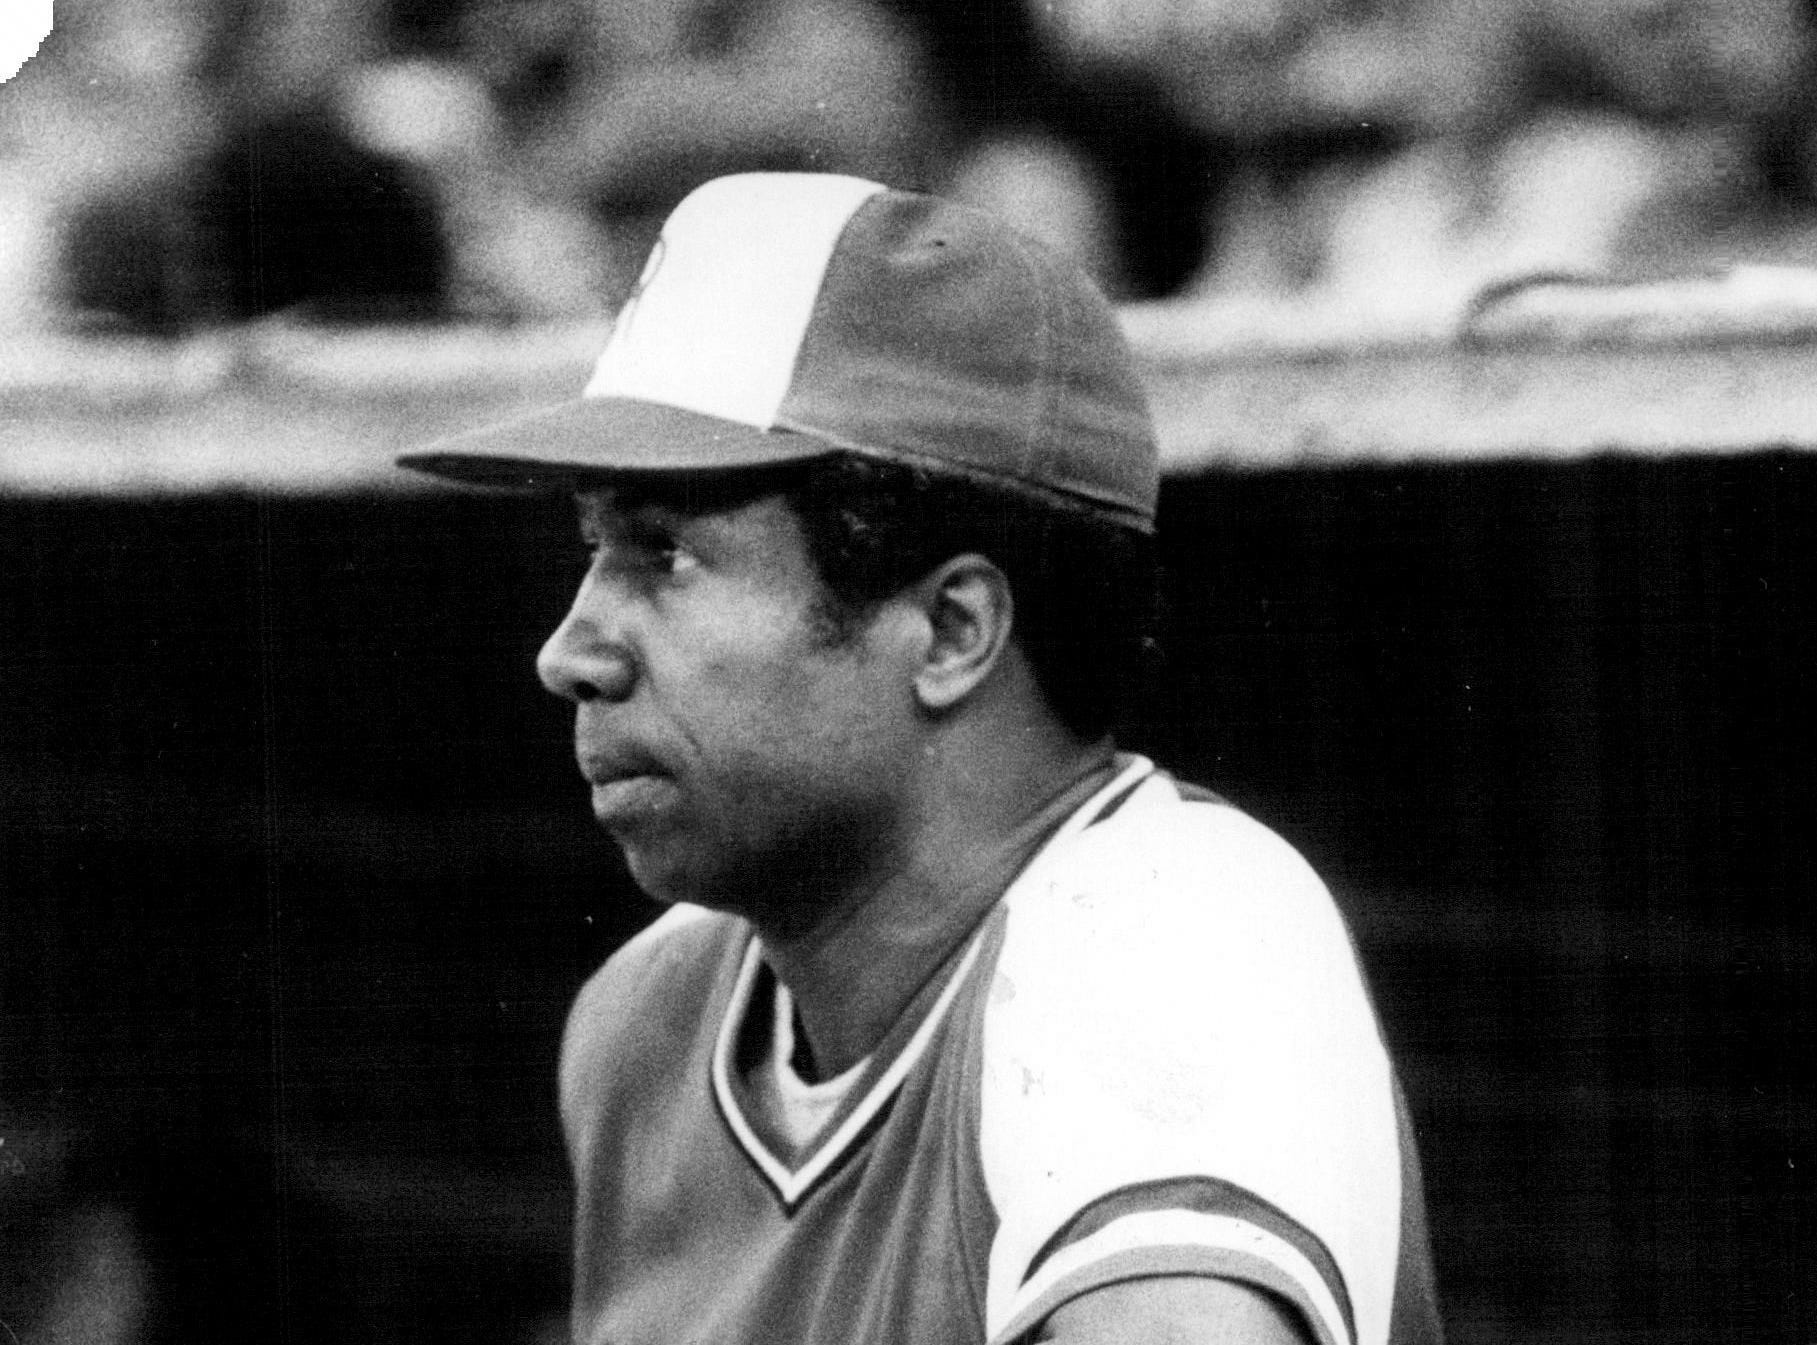 Frank Robinson managed the Rochester Red Wings in 1978. The Baseball Hall of Famer died on Feb. 7, 2019 at the age of 83.